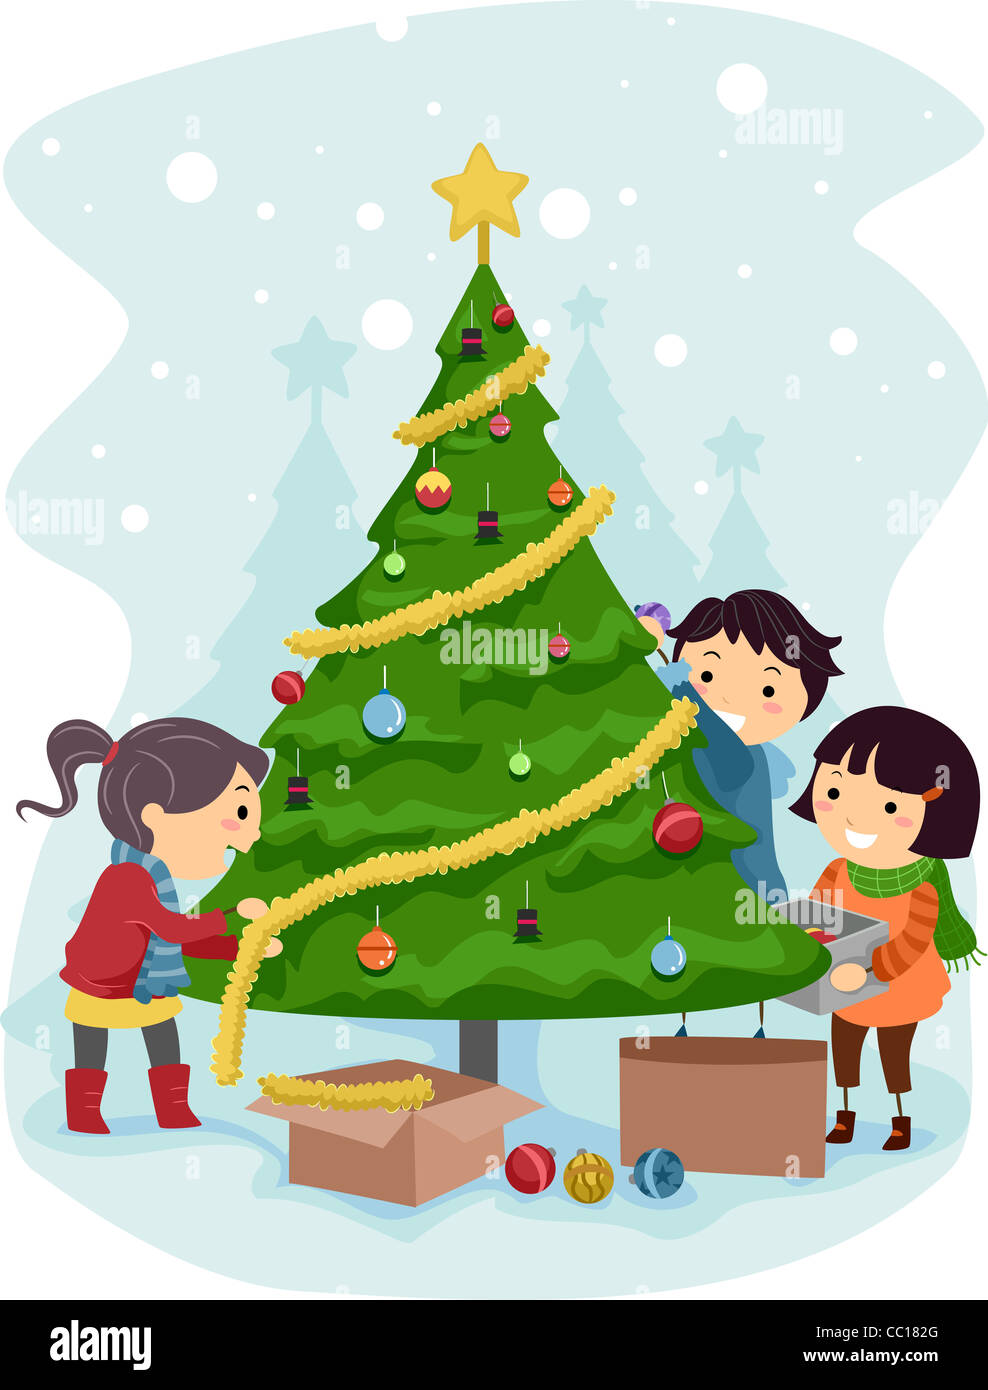 Illustration of Kids Decorating a Christmas Tree Stock Photo ...